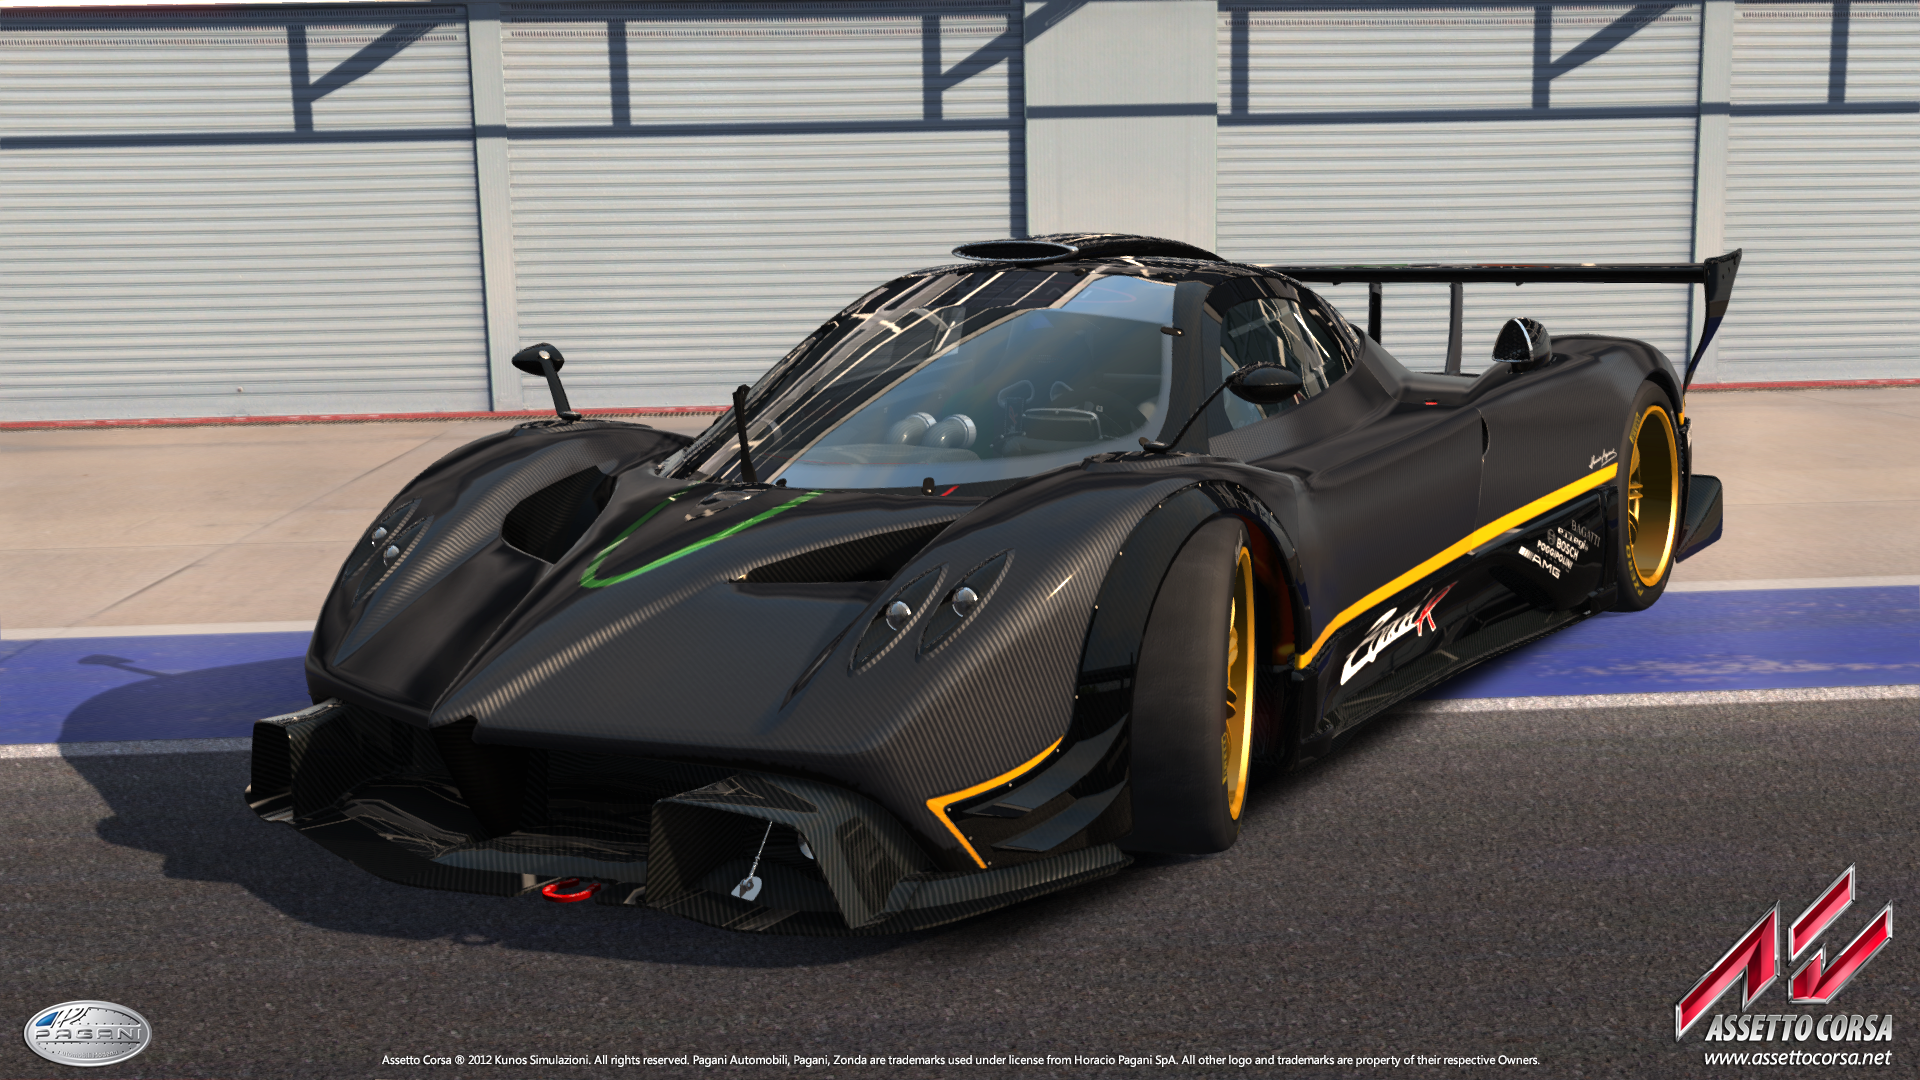 New screenshots of Assetto Corsa's Zonda R